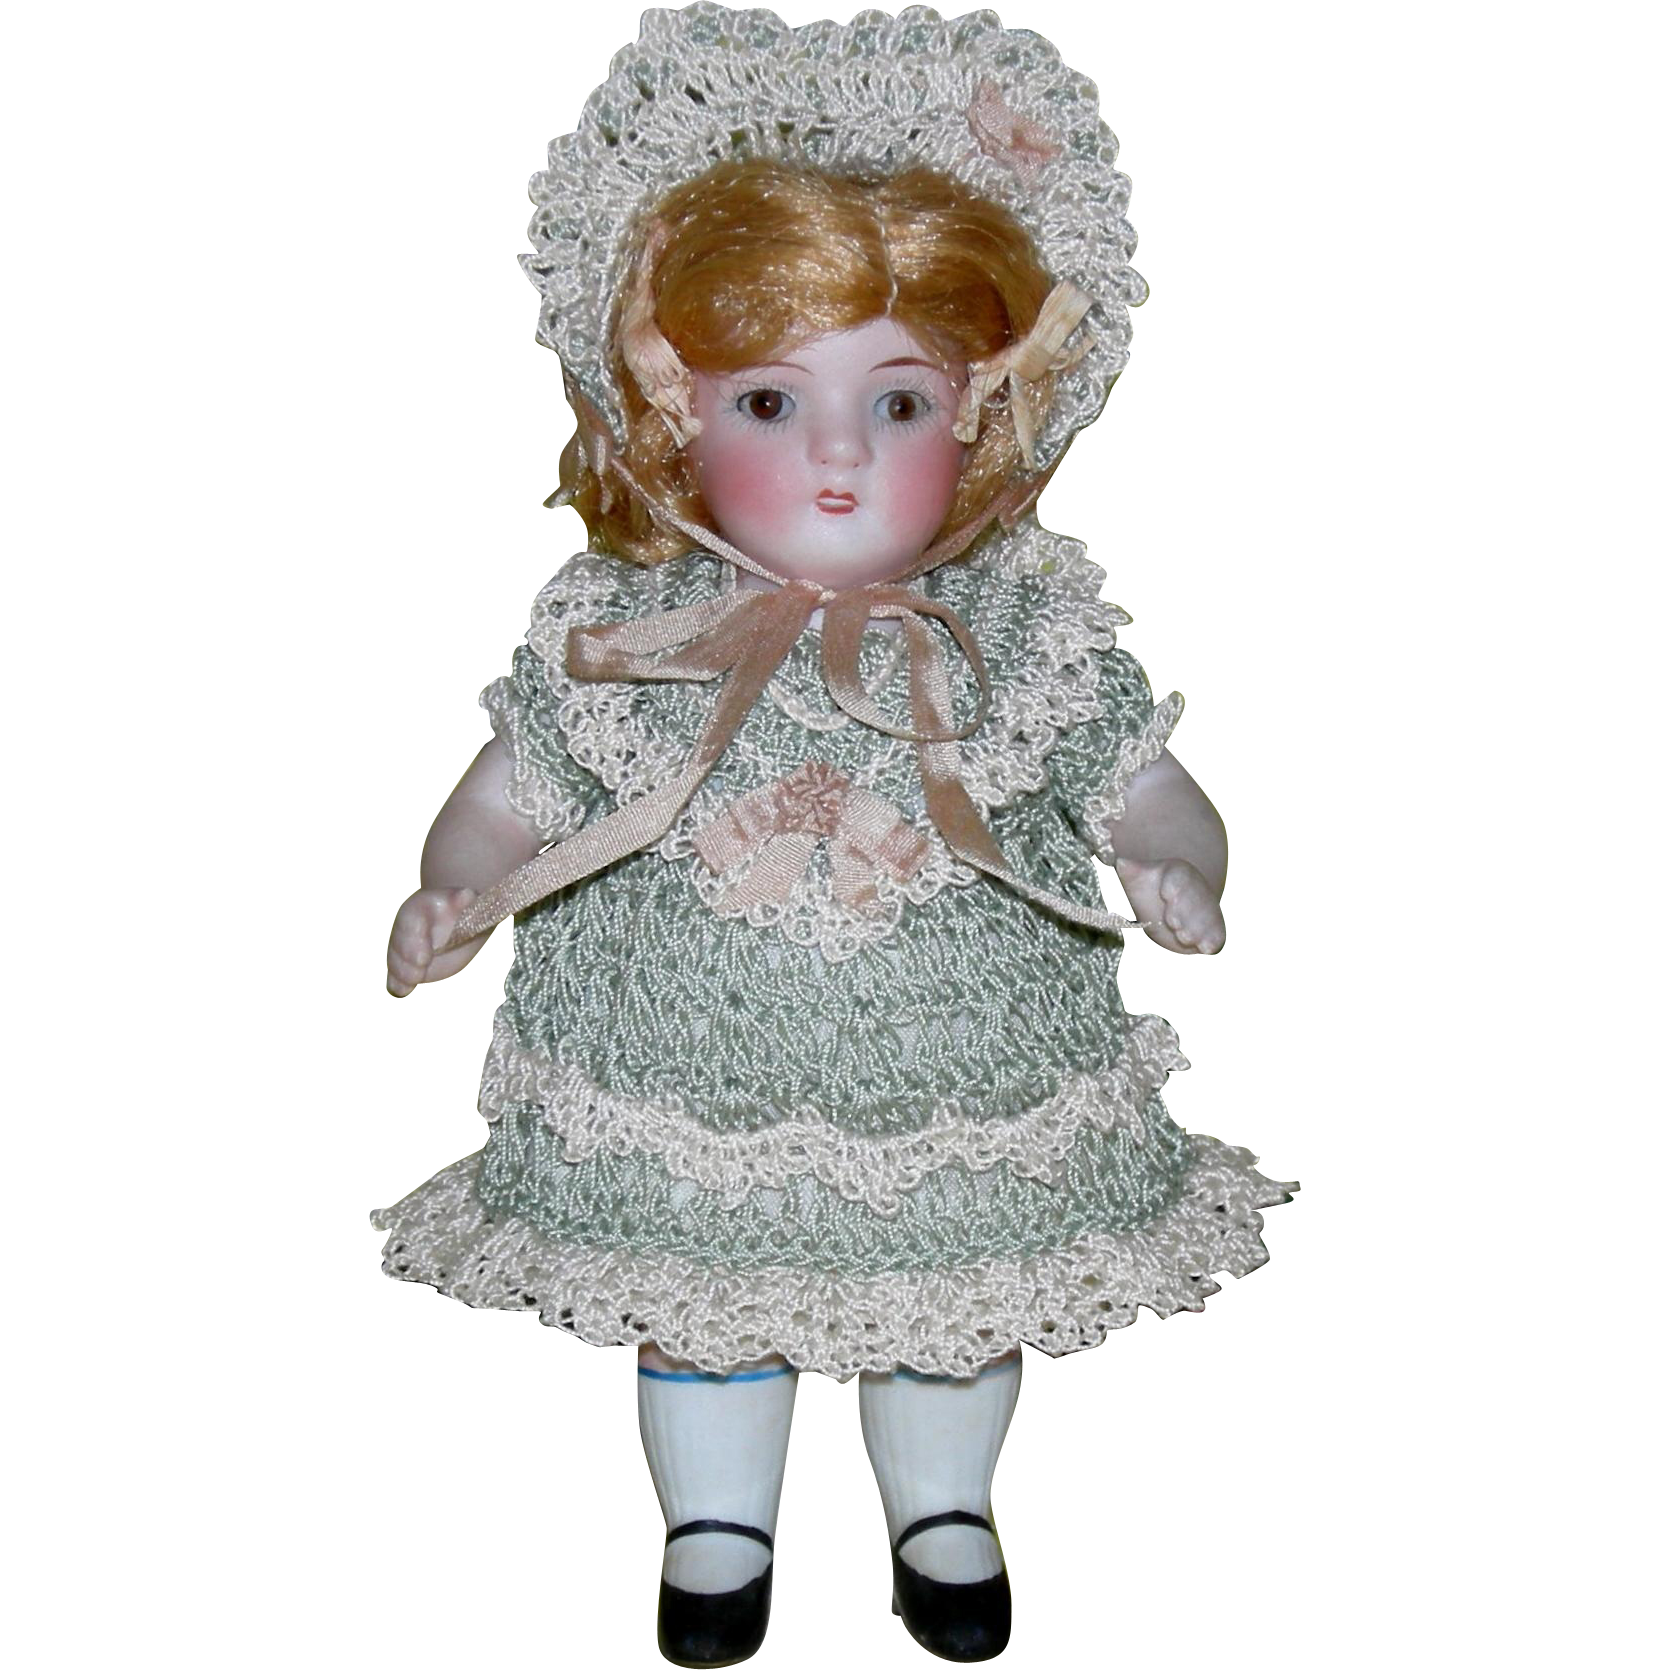 "ALT BECK & GOTTSCHALCK - 6"" - ALL BISQUE - Sleep Eyes - Mold 83 100 N. - Matching Numbered Parts on Arms & Legs!!!"